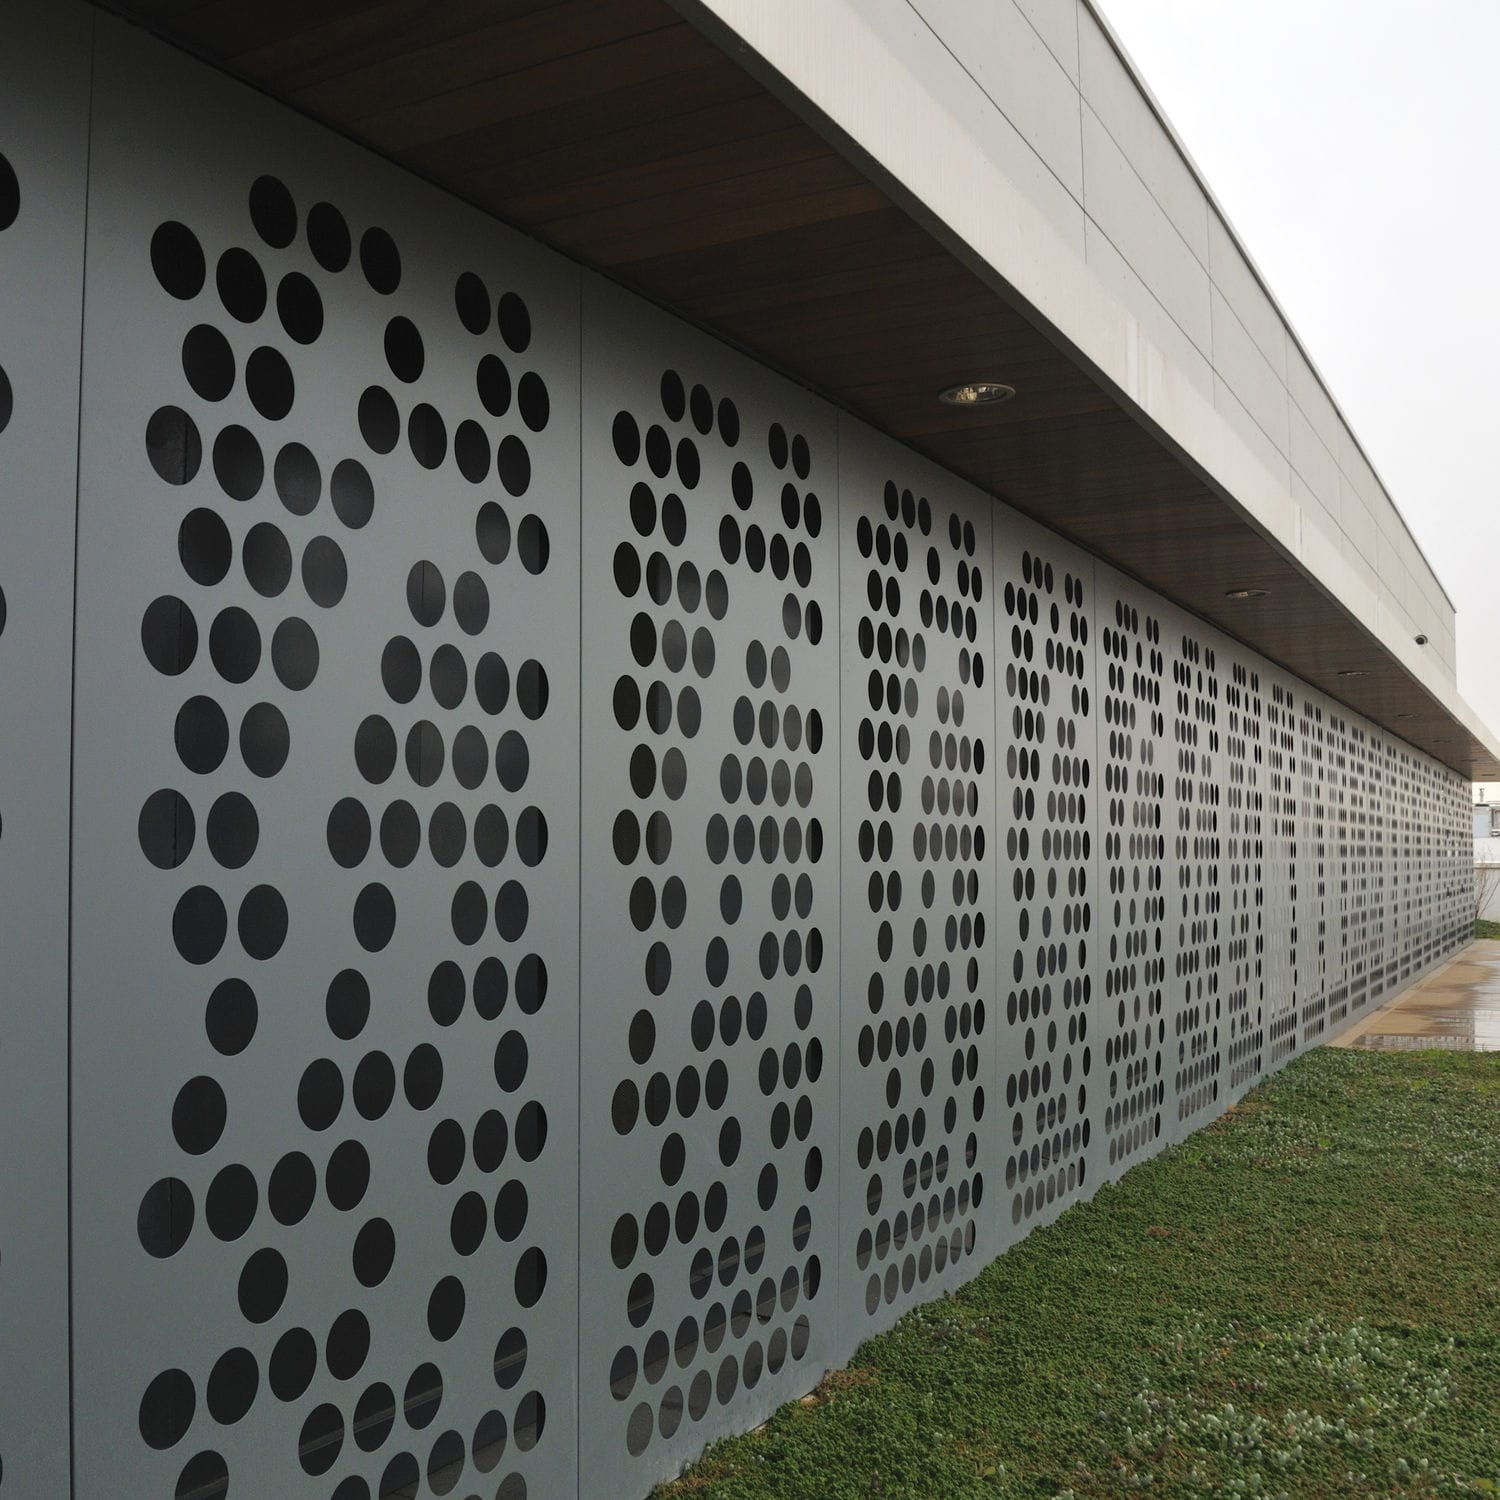 decorative sheet metal perforated aluminum for facades dupanel perfore durmi - Decorative Sheet Metal